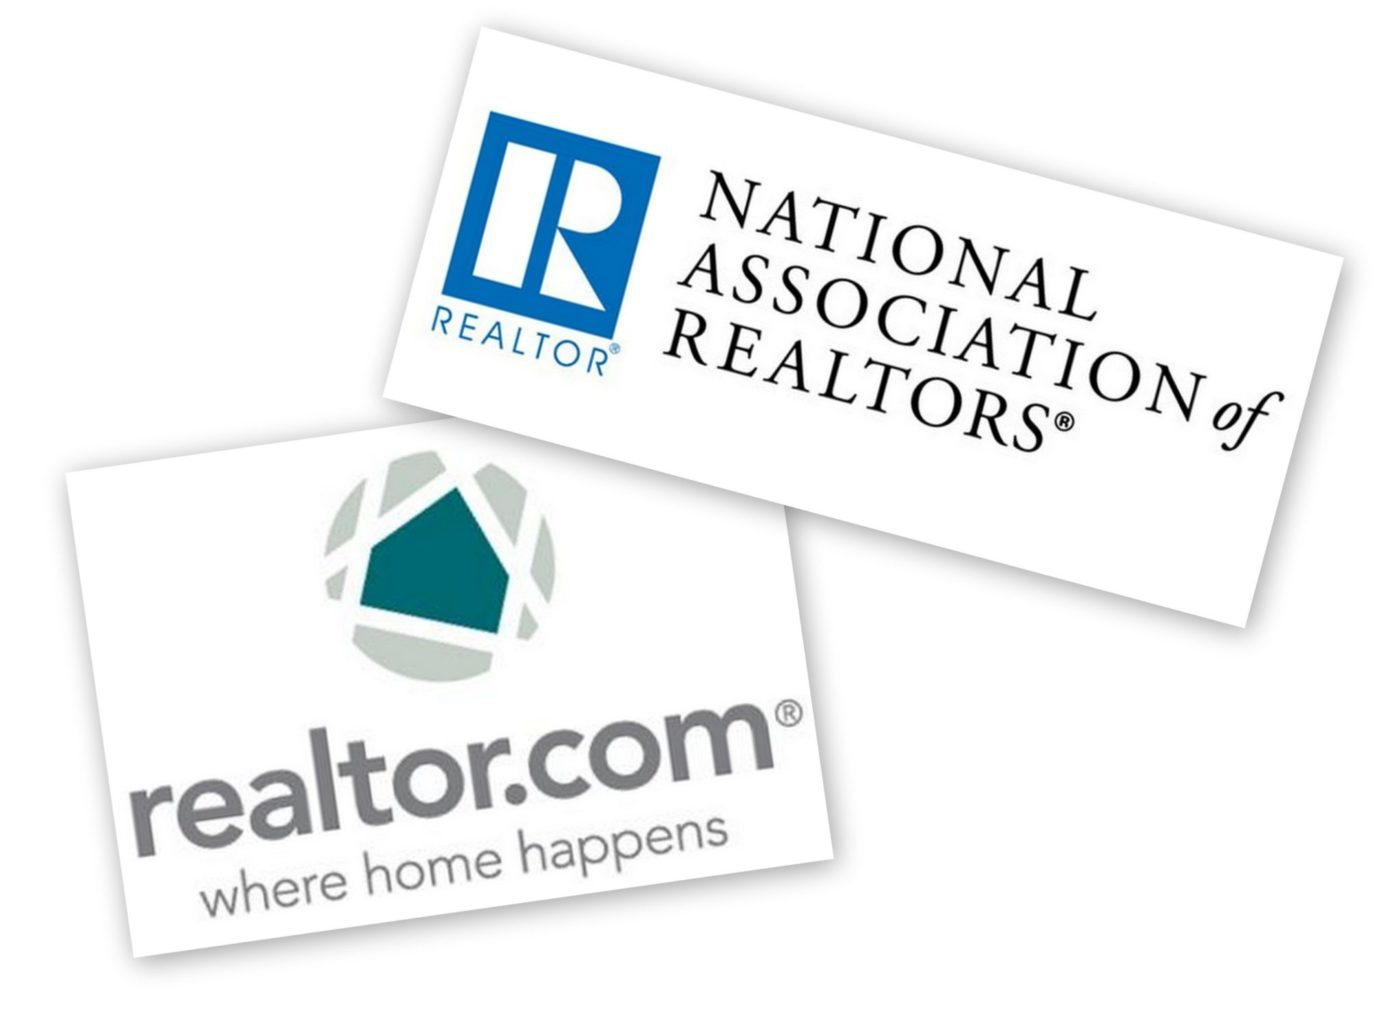 Realtor.com's perspective on NAR board vote